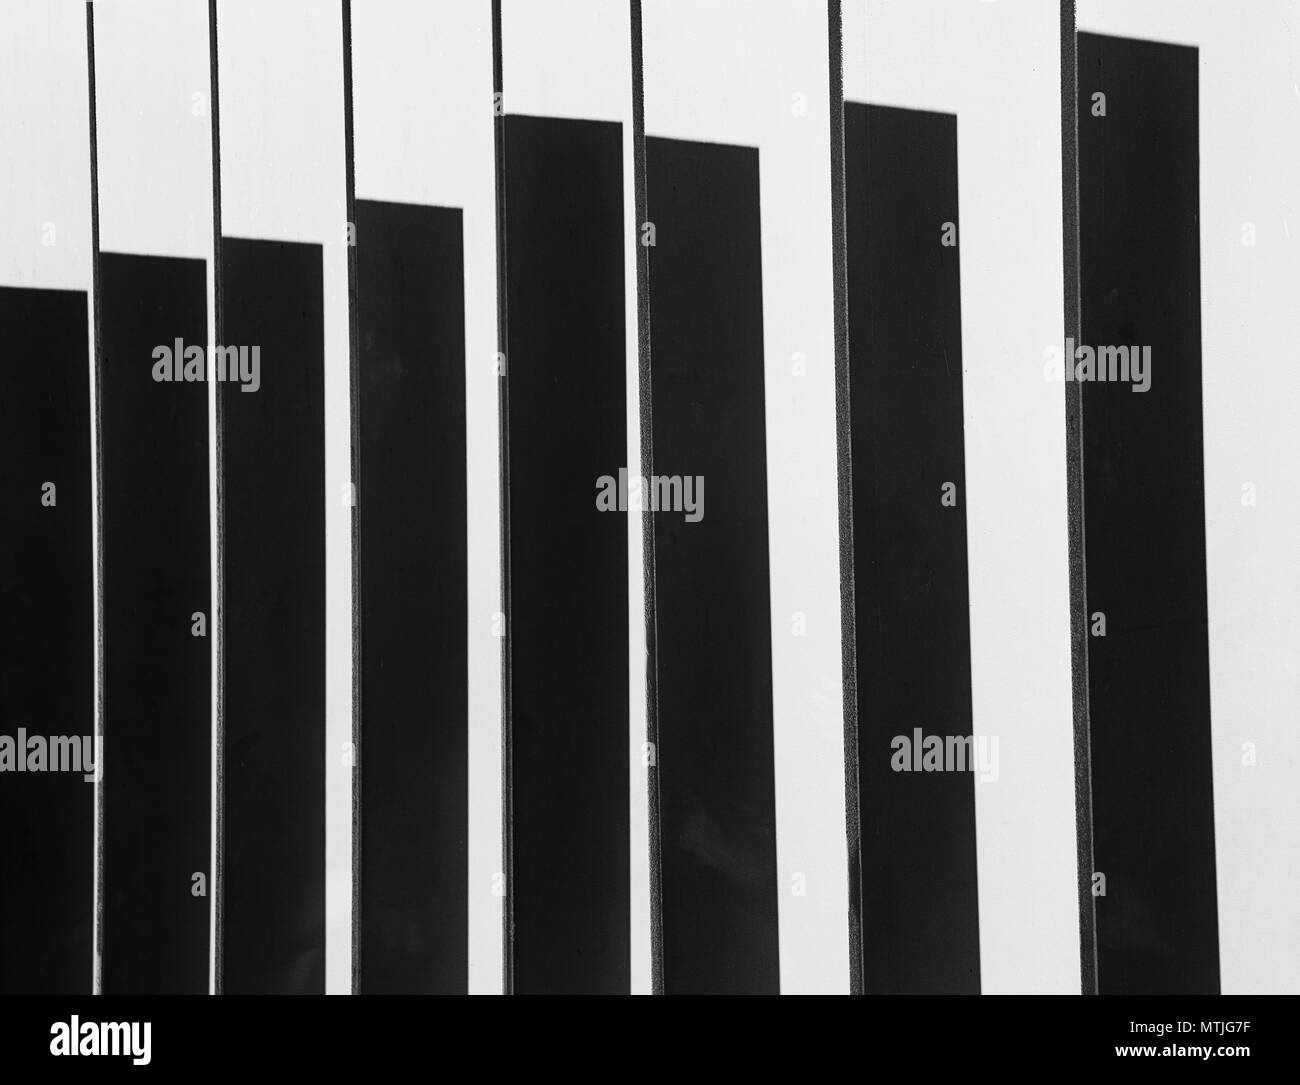 Shadows on the metal panel of the fence outside the White Cube Gallery, London, UK - Stock Image